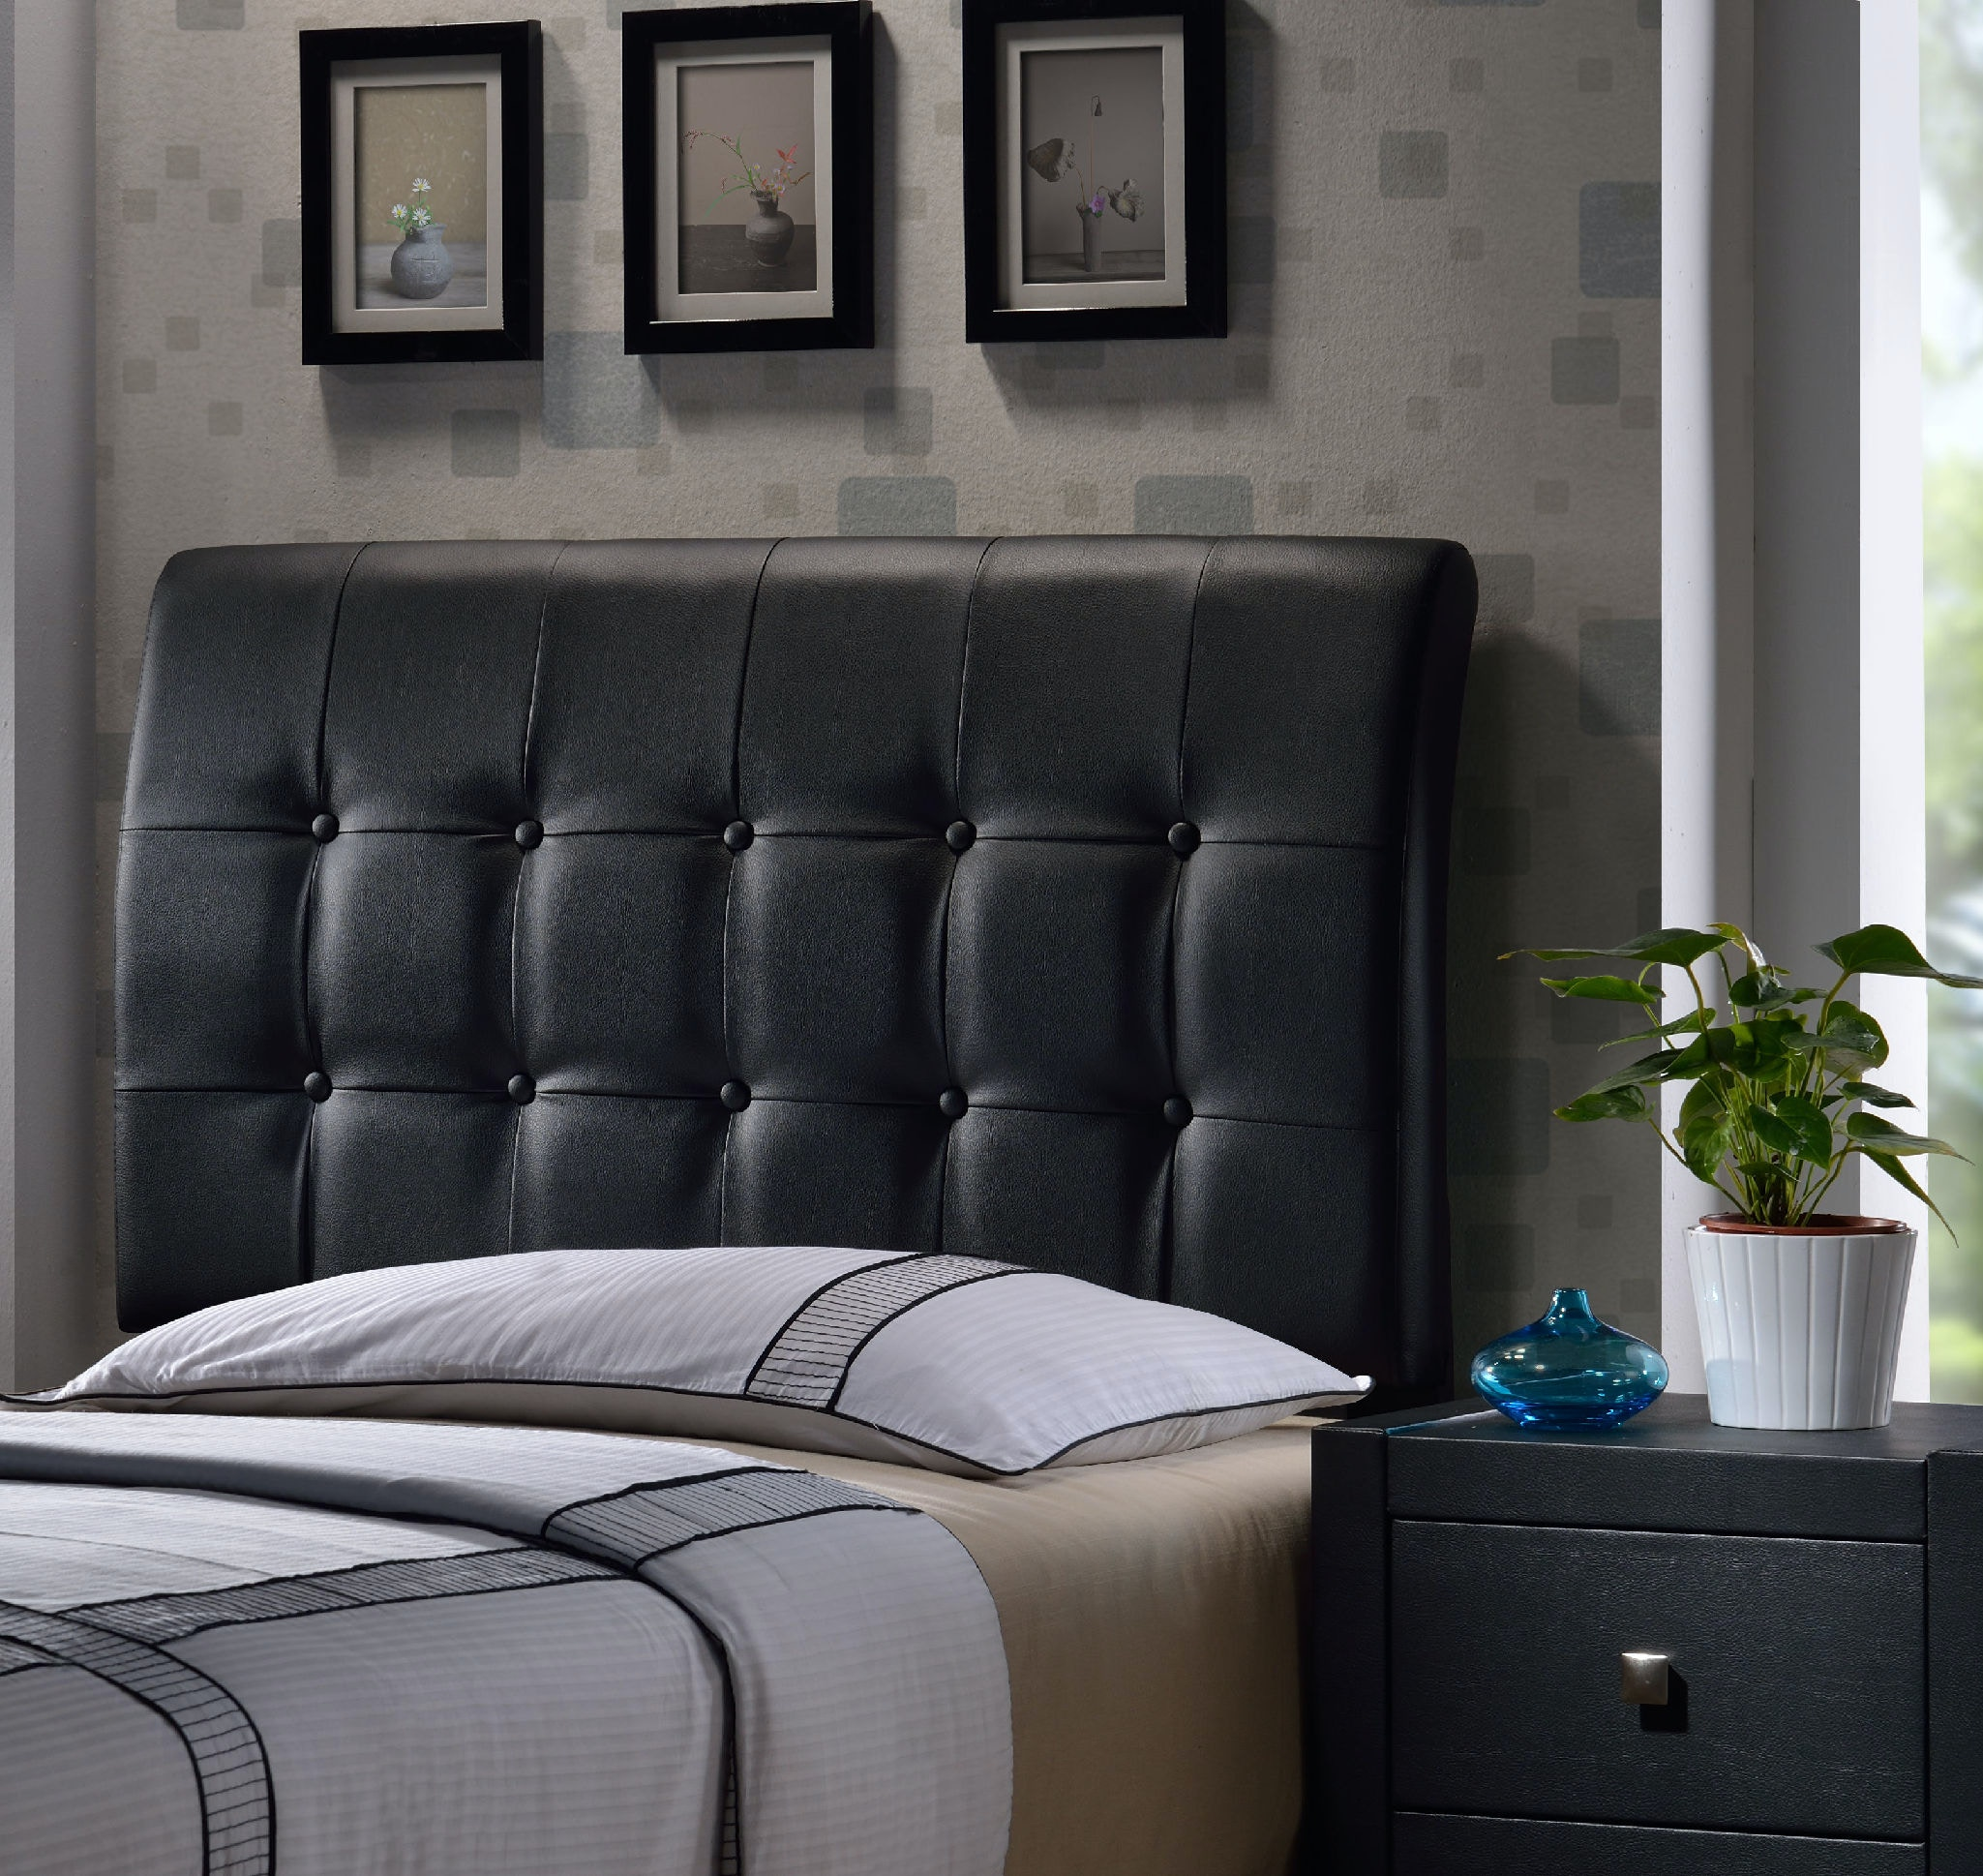 Attractive Hillsdale Furniture Youth Footboard And Rails   Full 1281 450 At Carol  House Furniture